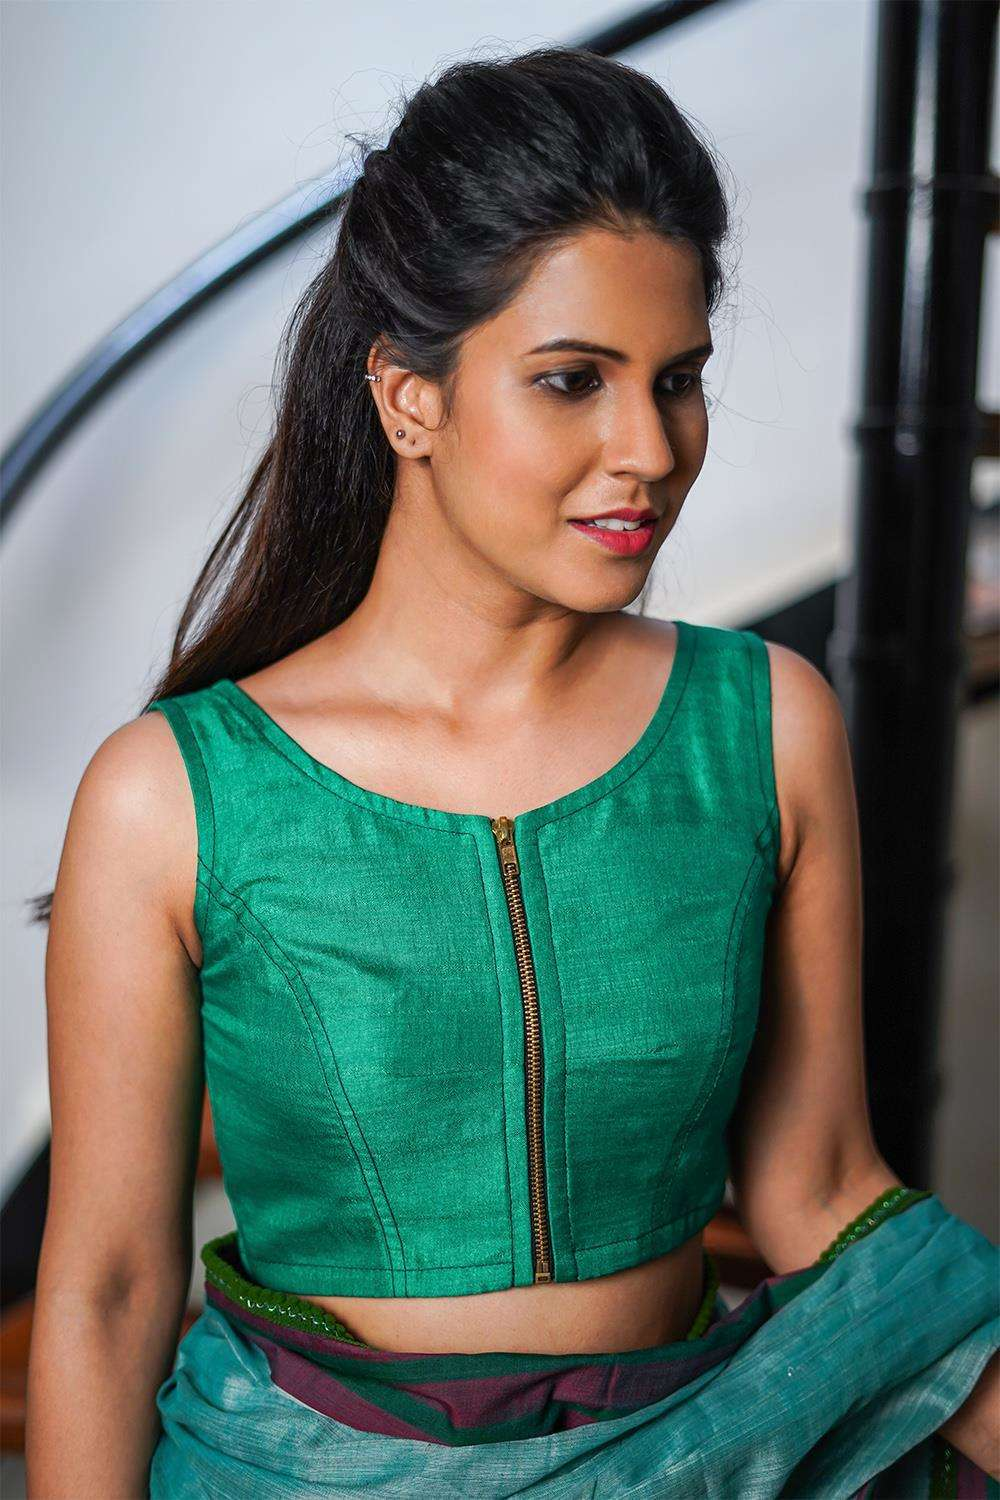 Sea green semi matka silk sleeveless blouse with zip detailing - House of Blouse